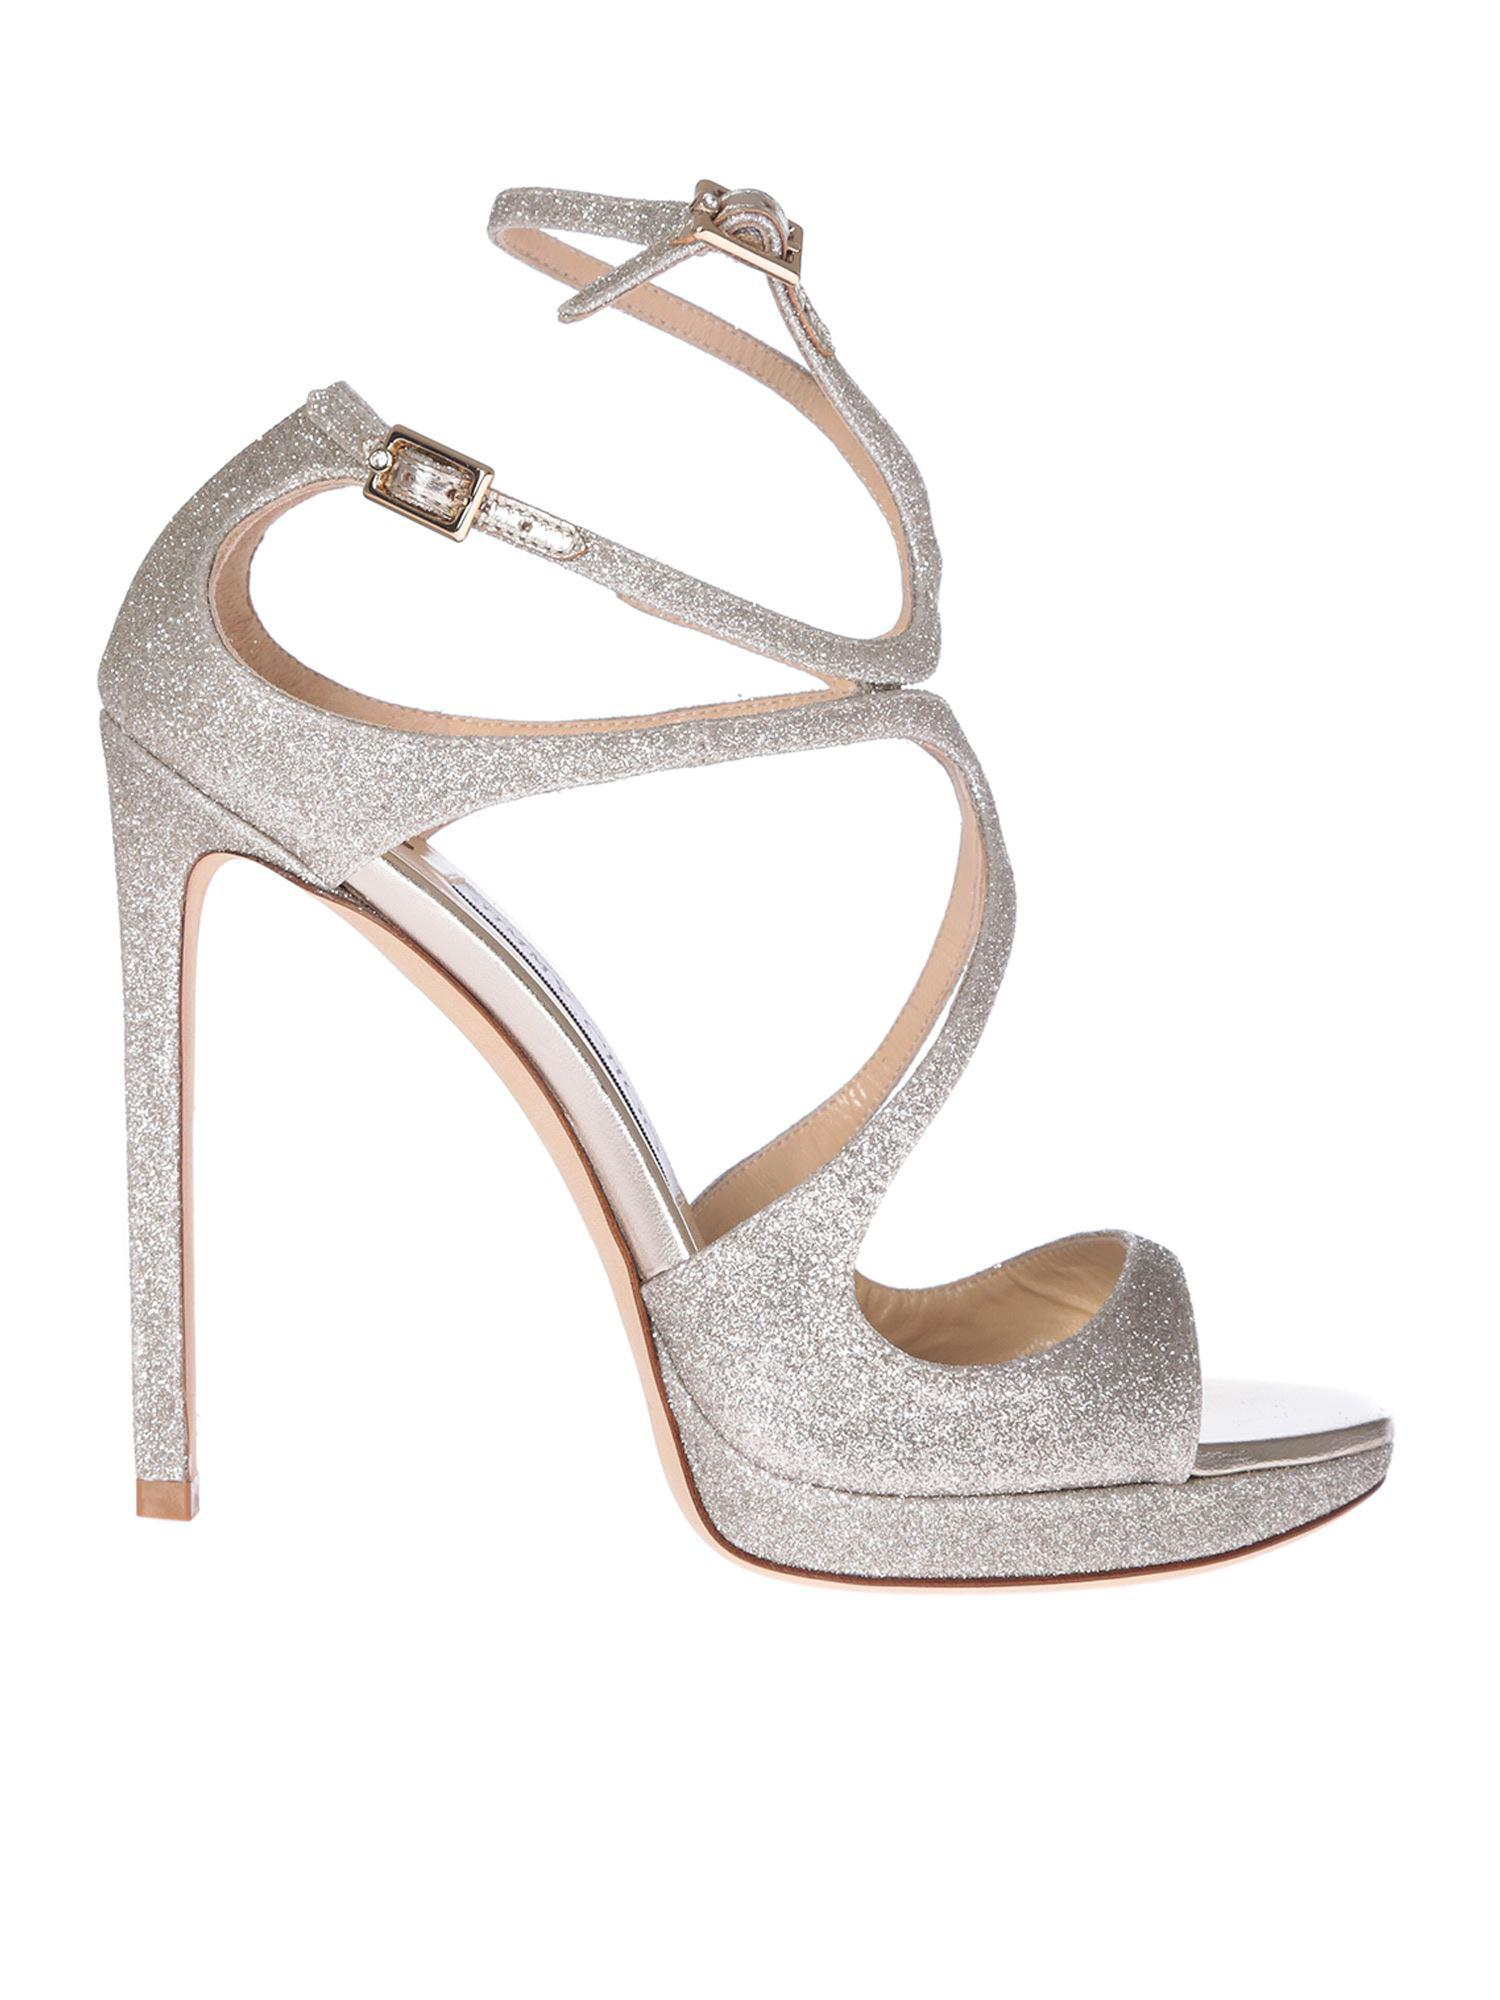 3751a898f8c7 Lyst - Jimmy Choo Lance 120 Glittered Leather Sandals